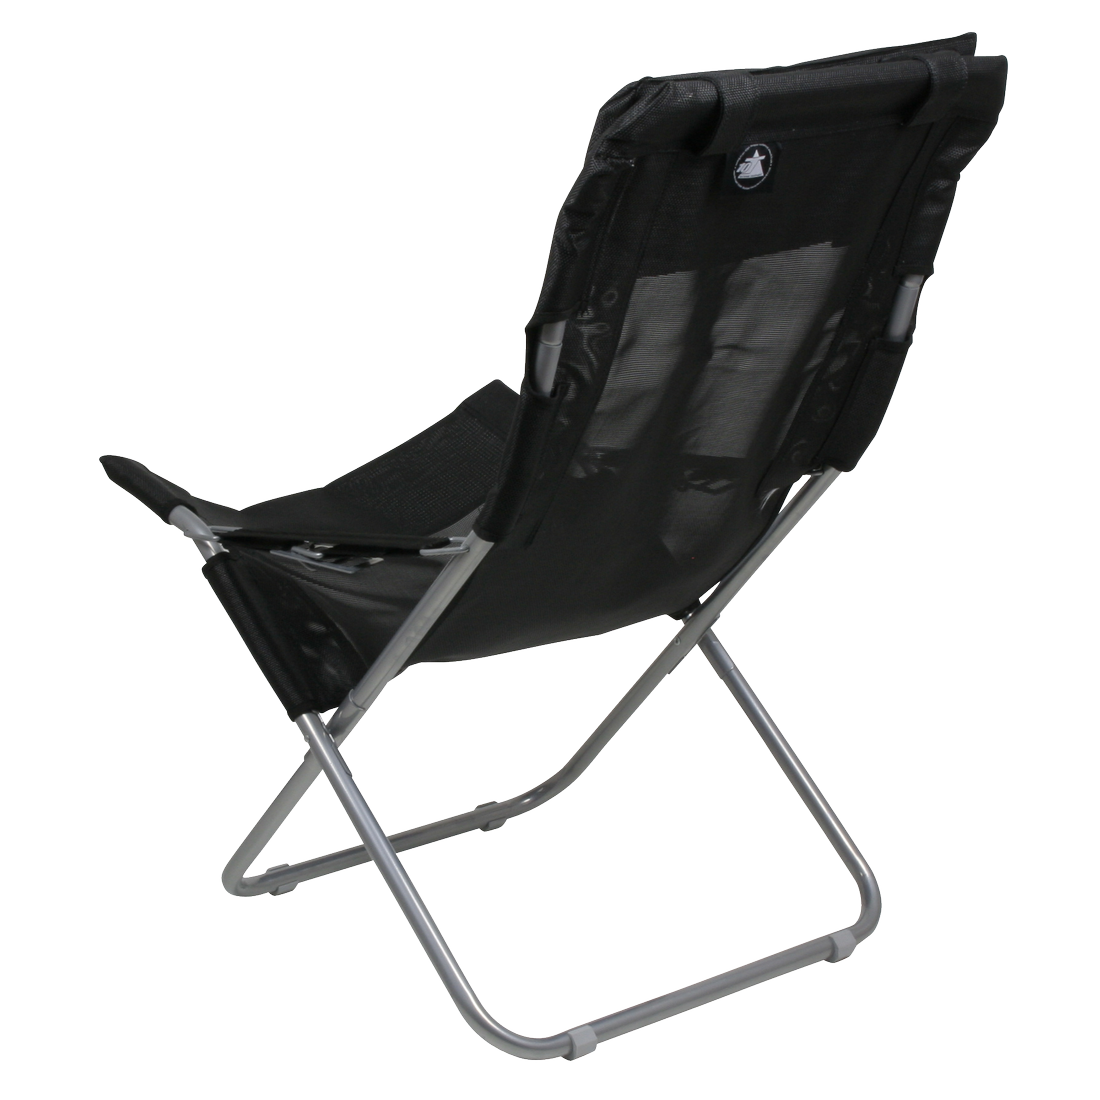 10T Maxi Chair Camping Chair Relax High Back With Head Cushion 4x Adjustm